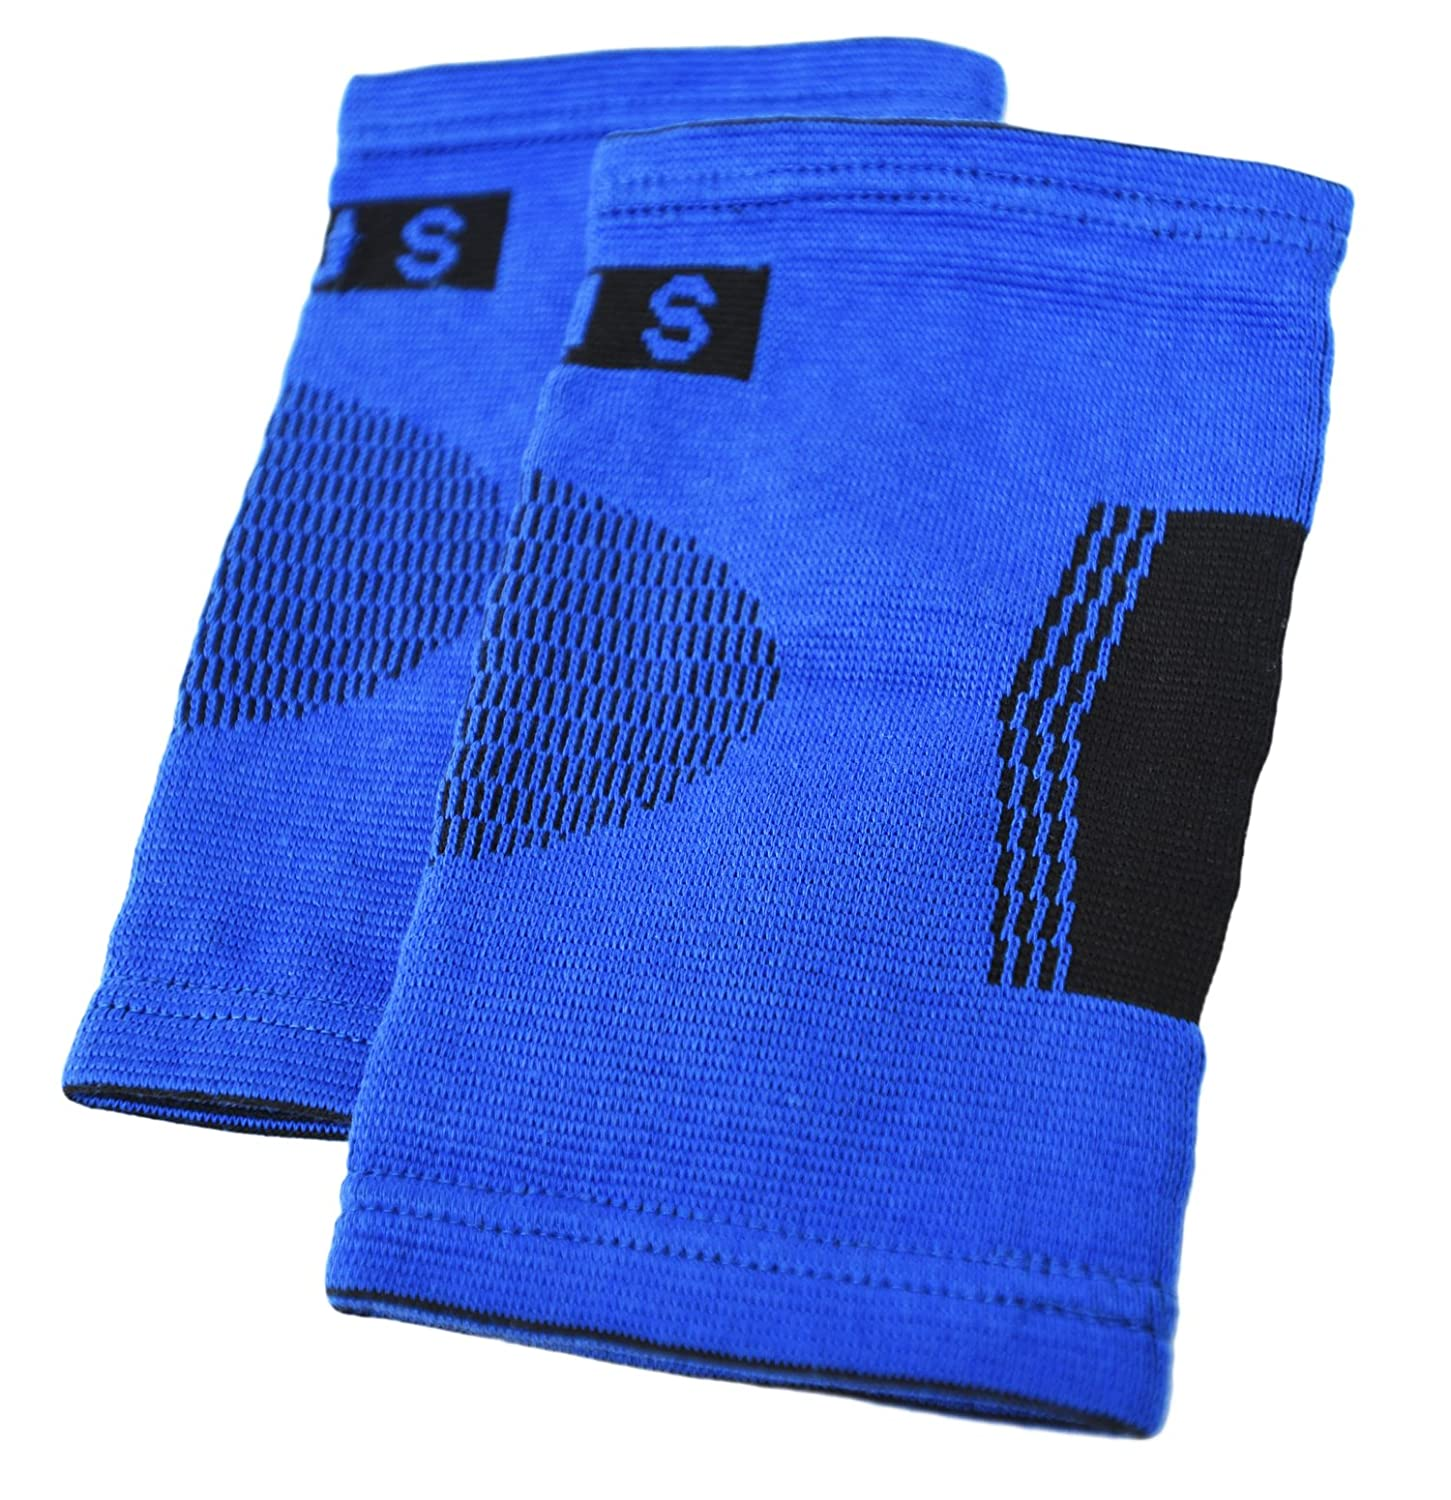 2 Professional Elbow Support Sleeves By Susama - Large/X-large Size - #1 Compression Wraps, Tendonitis...